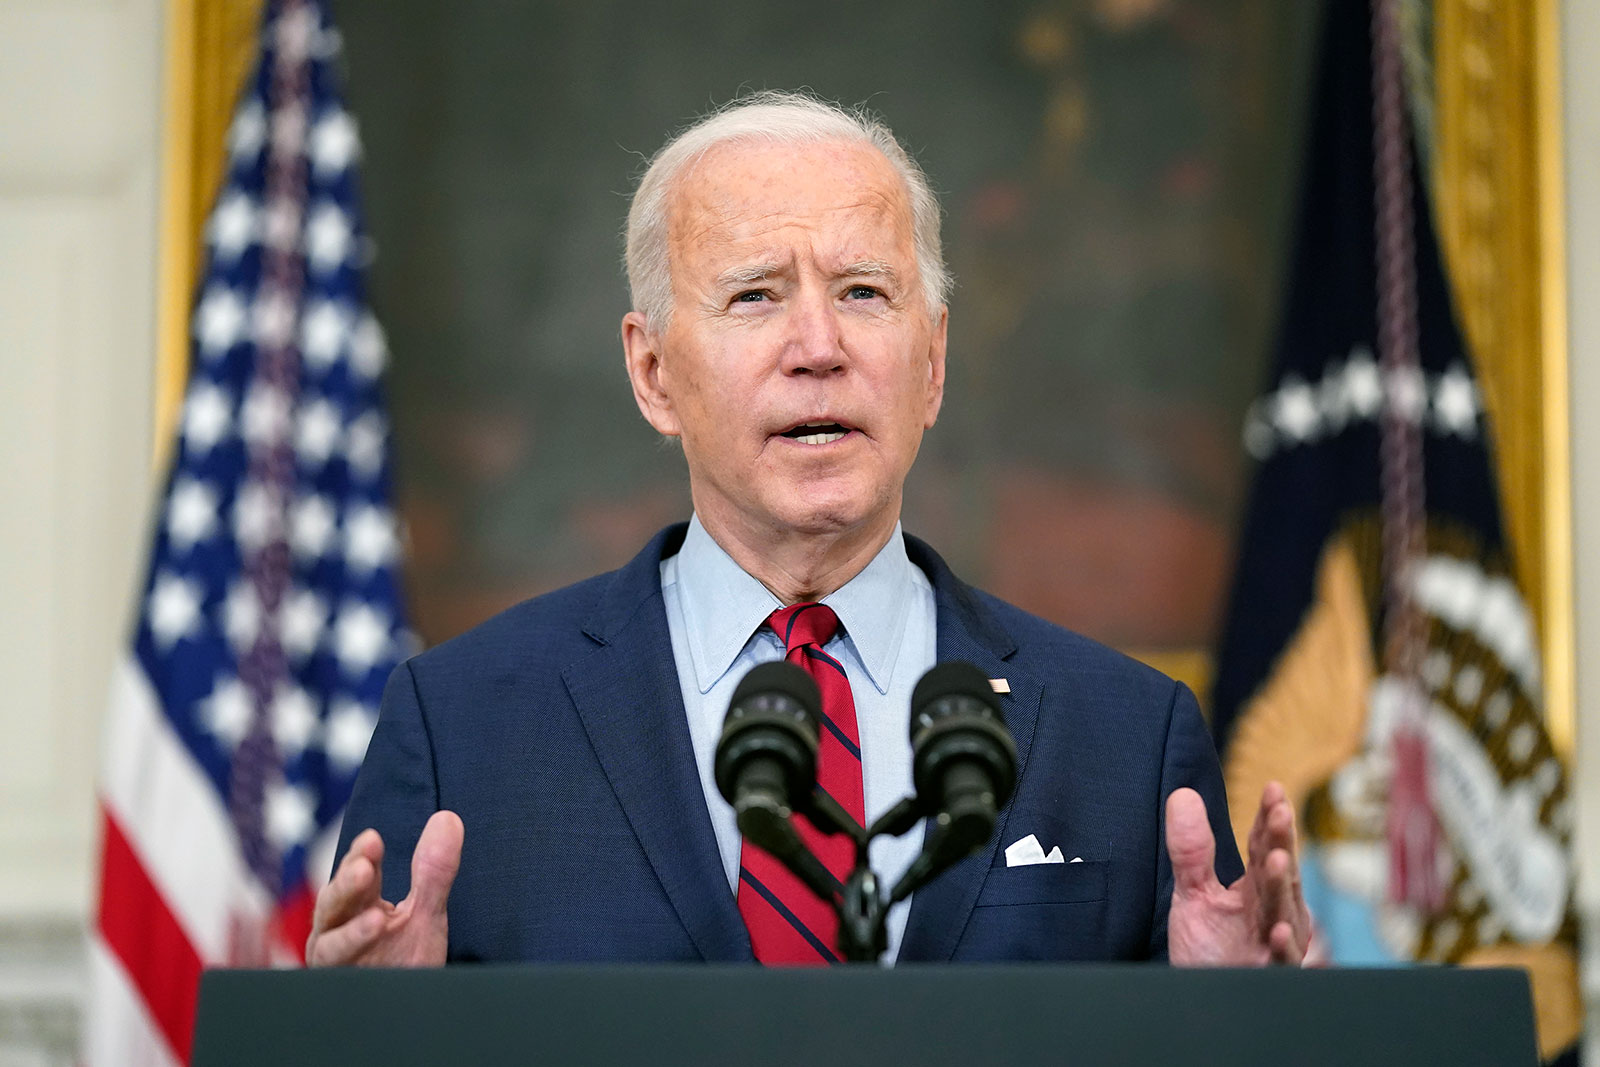 President Biden delivers remarks on the Boulder, Colorado, shooting on Tuesday.